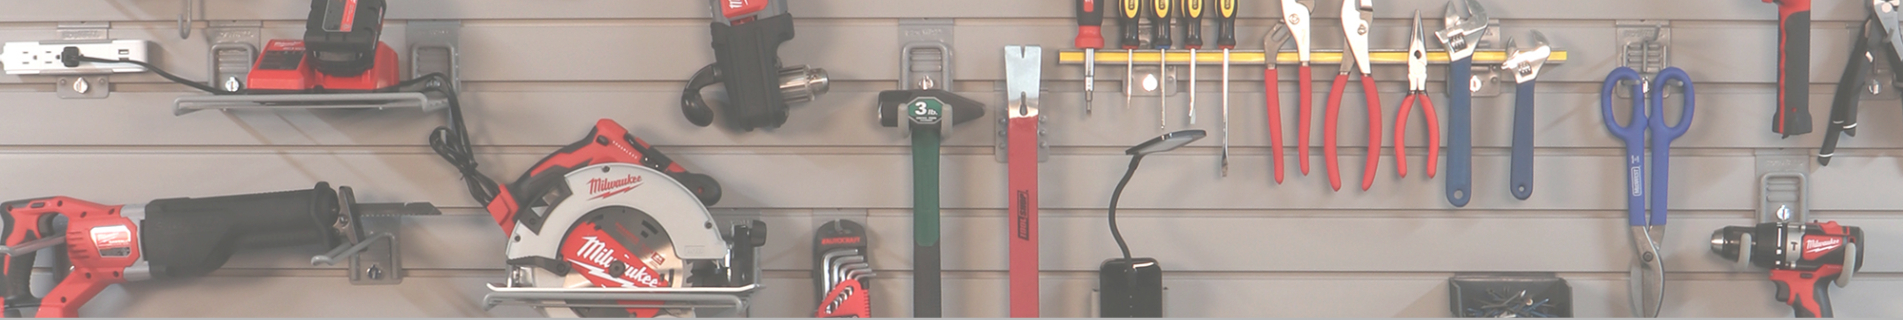 Tool Bits and Accessories